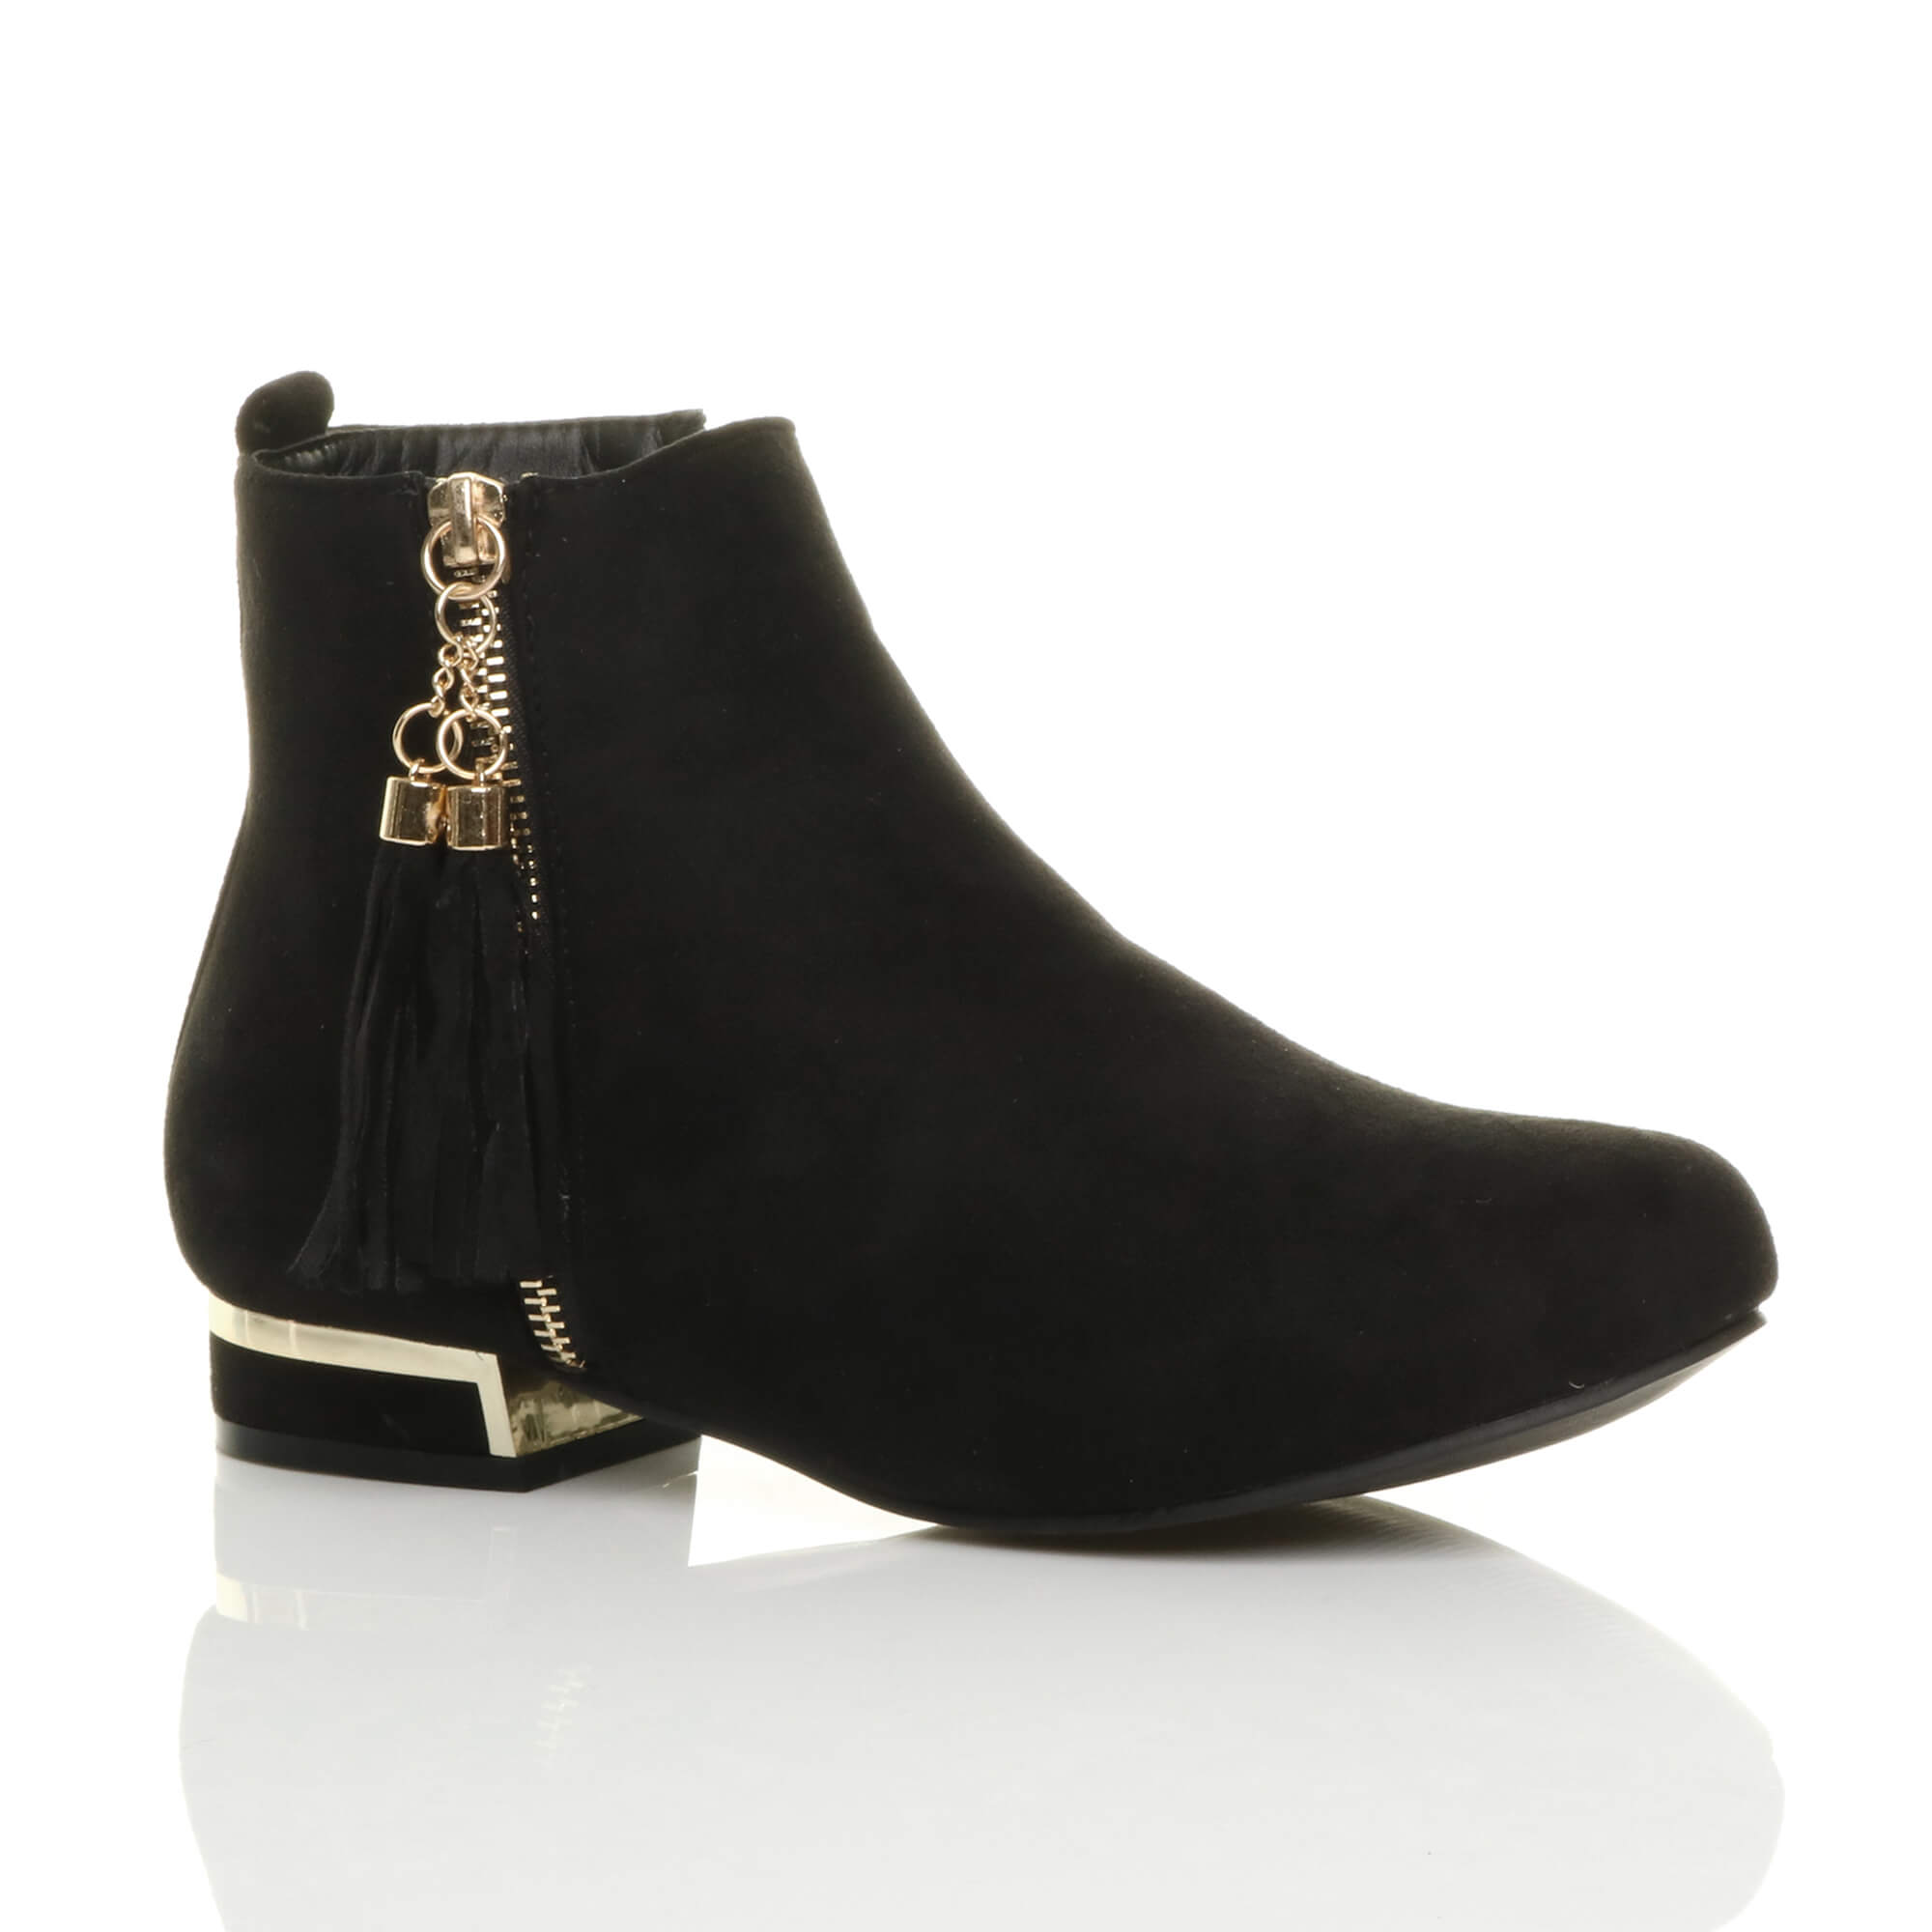 Women's Low Heel Gold Zip Ankle Boots Size